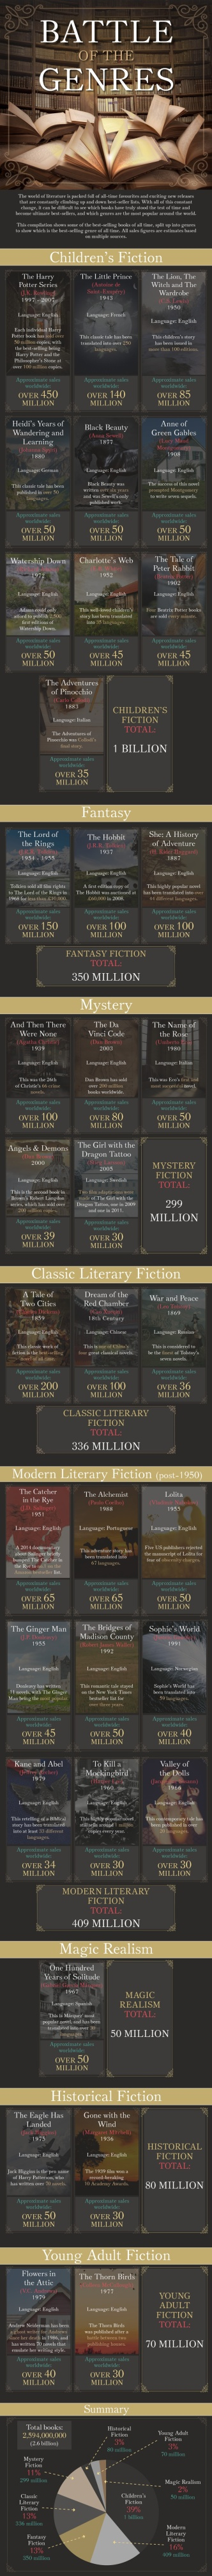 Most popular book genres of all time #infographic